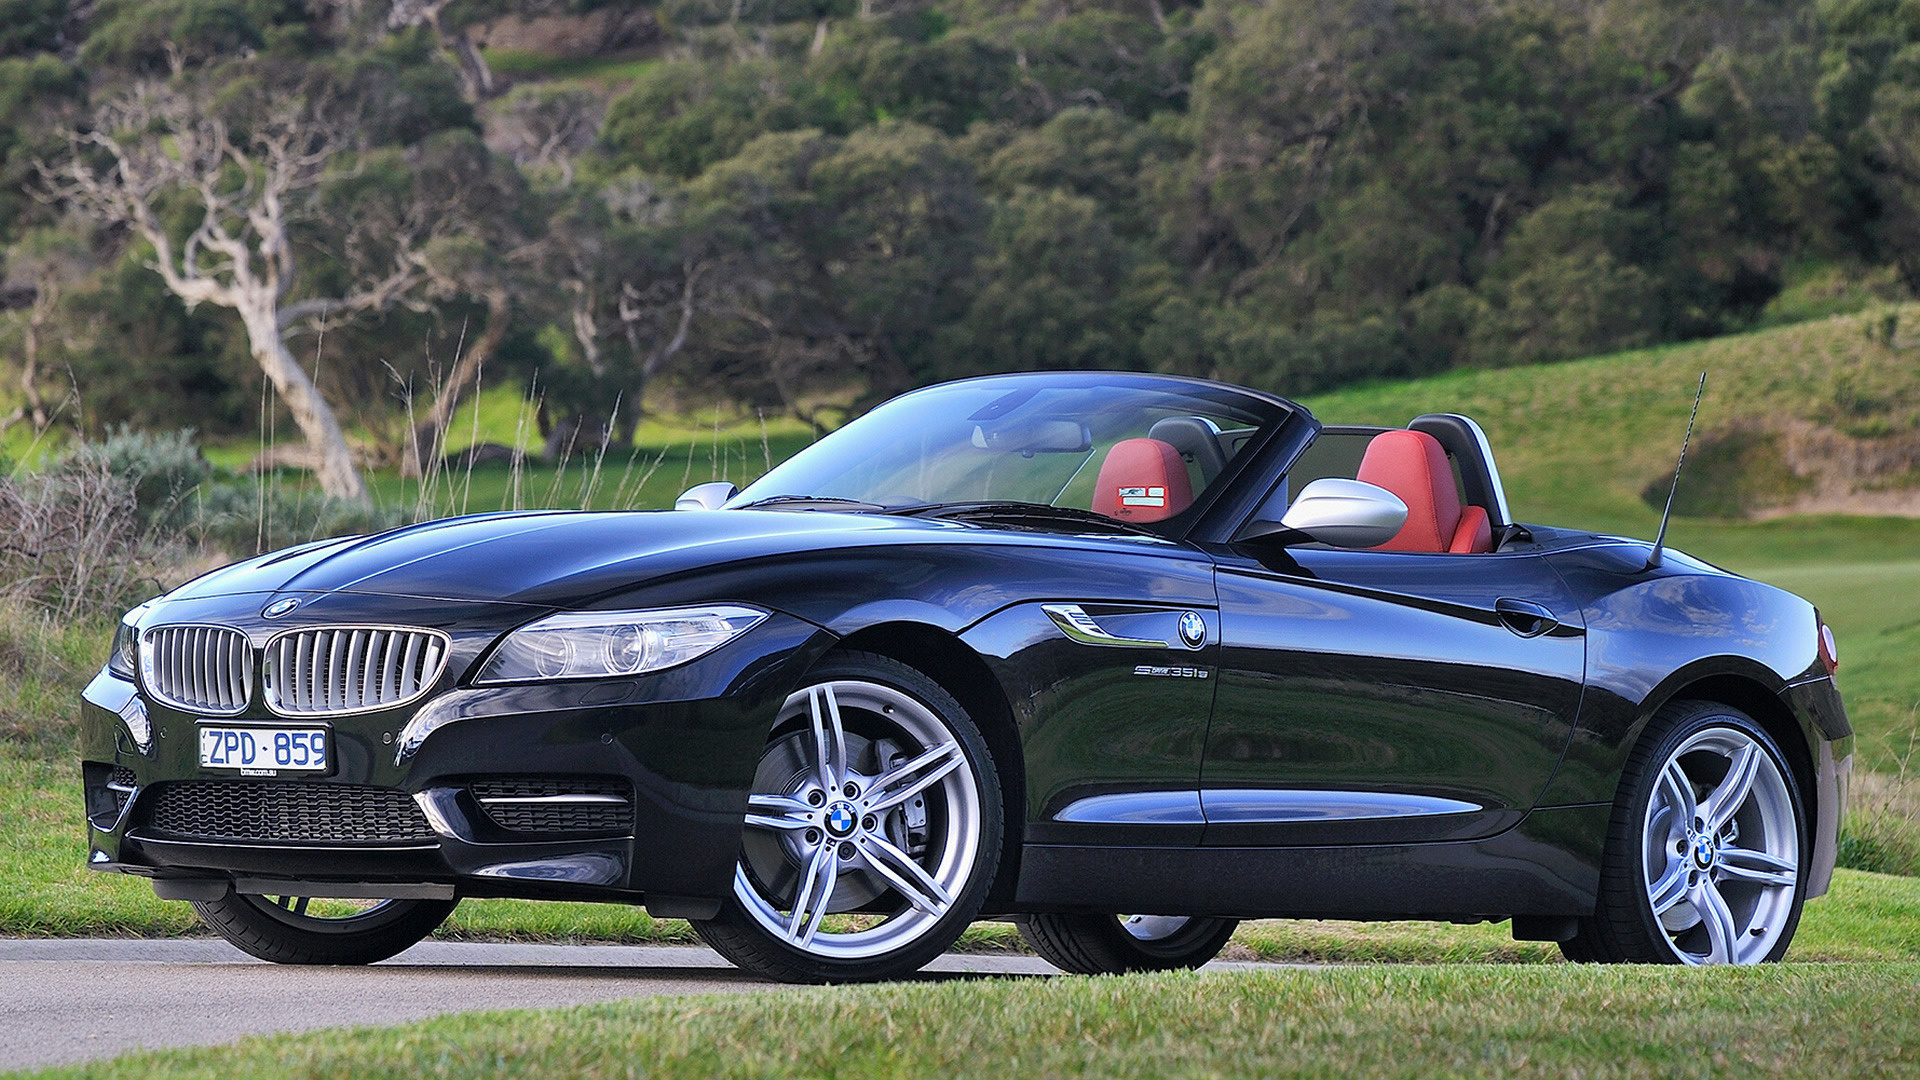 2013 Bmw Z4 M Sport Au Wallpapers And Hd Images Car ...